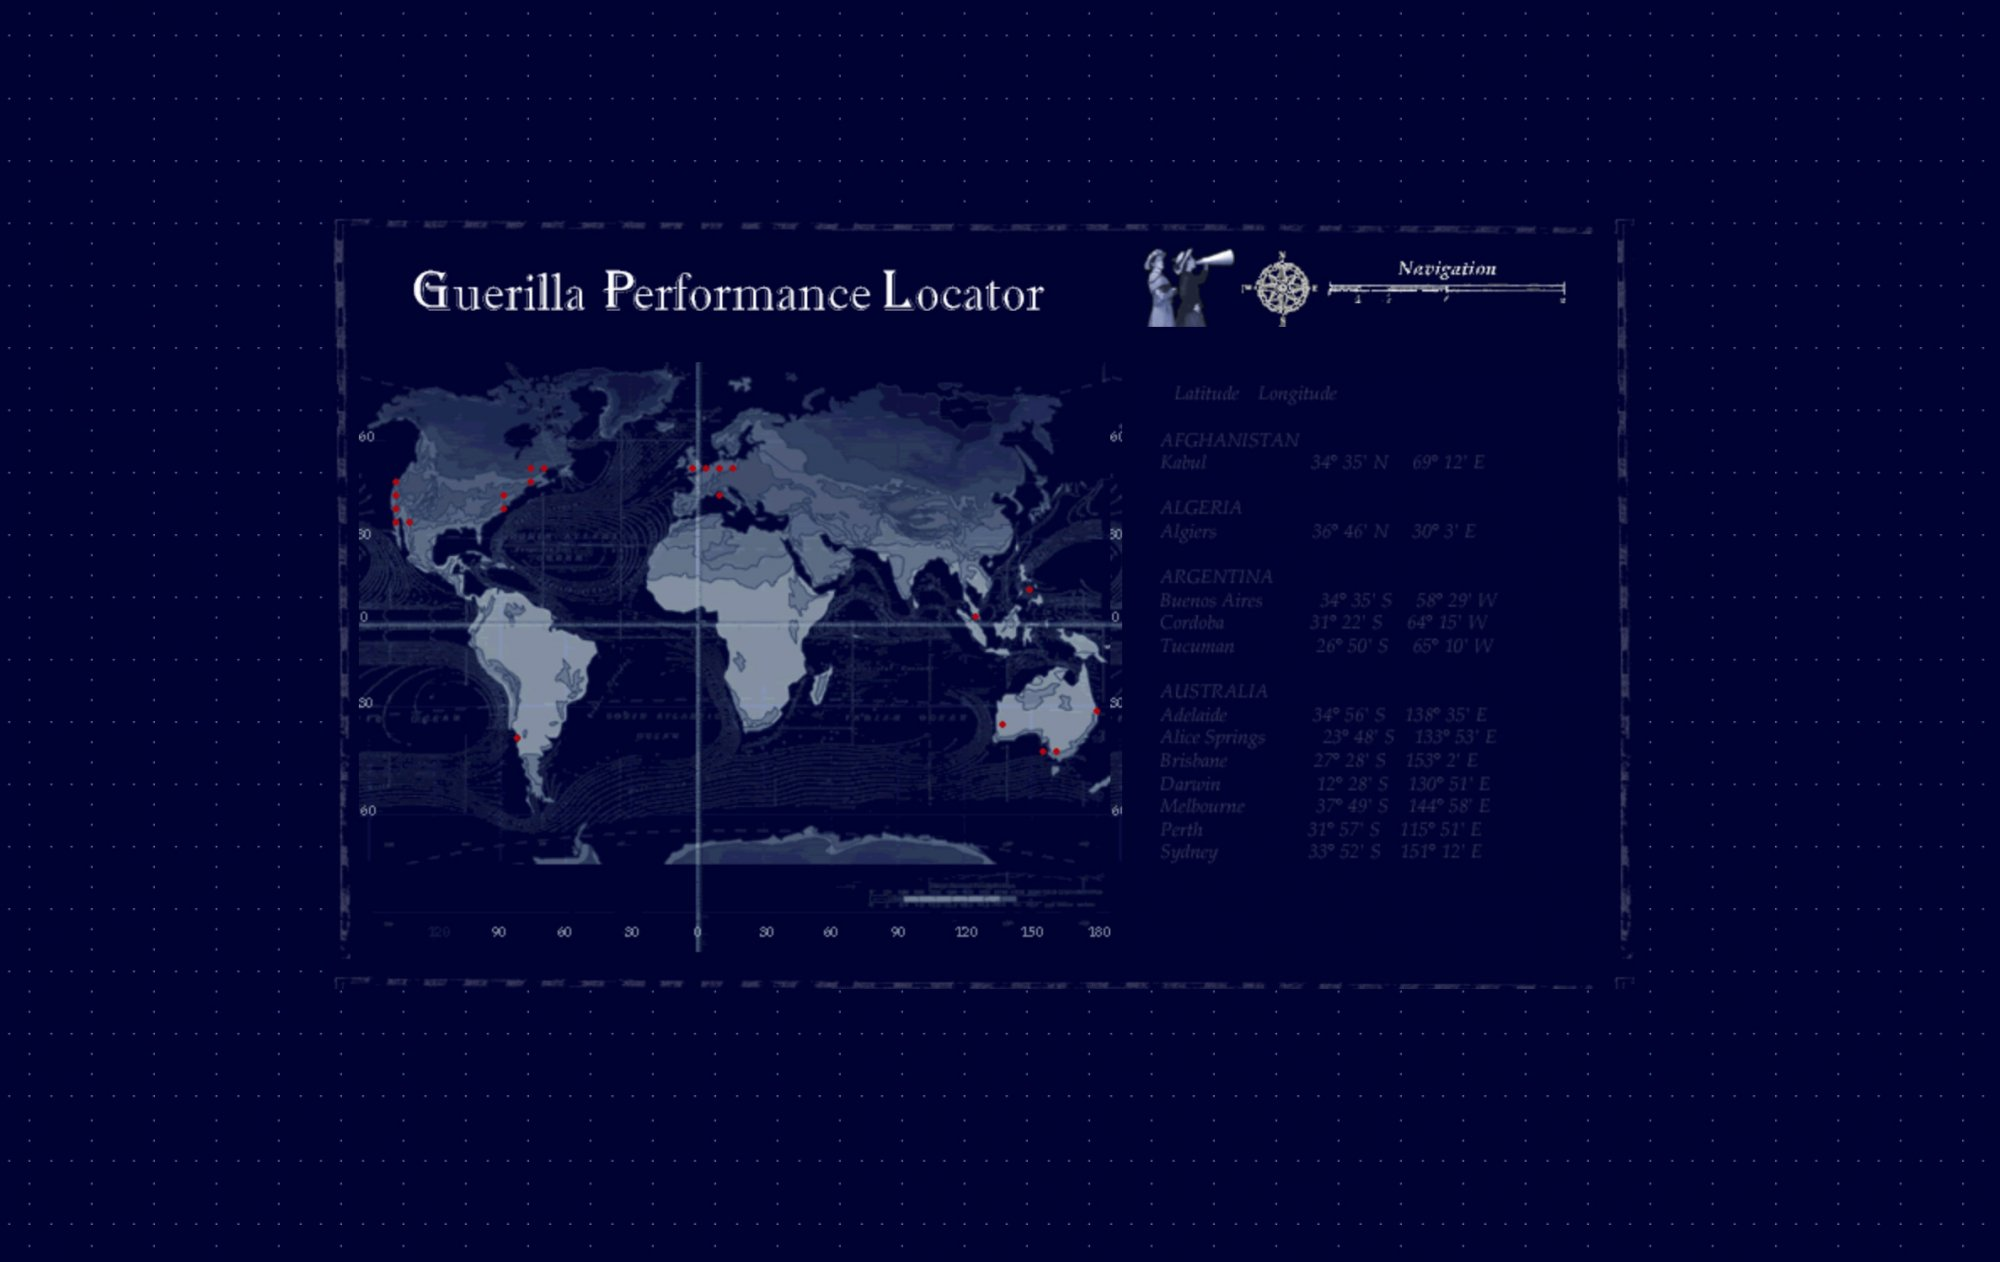 Guerilla Performance Locator